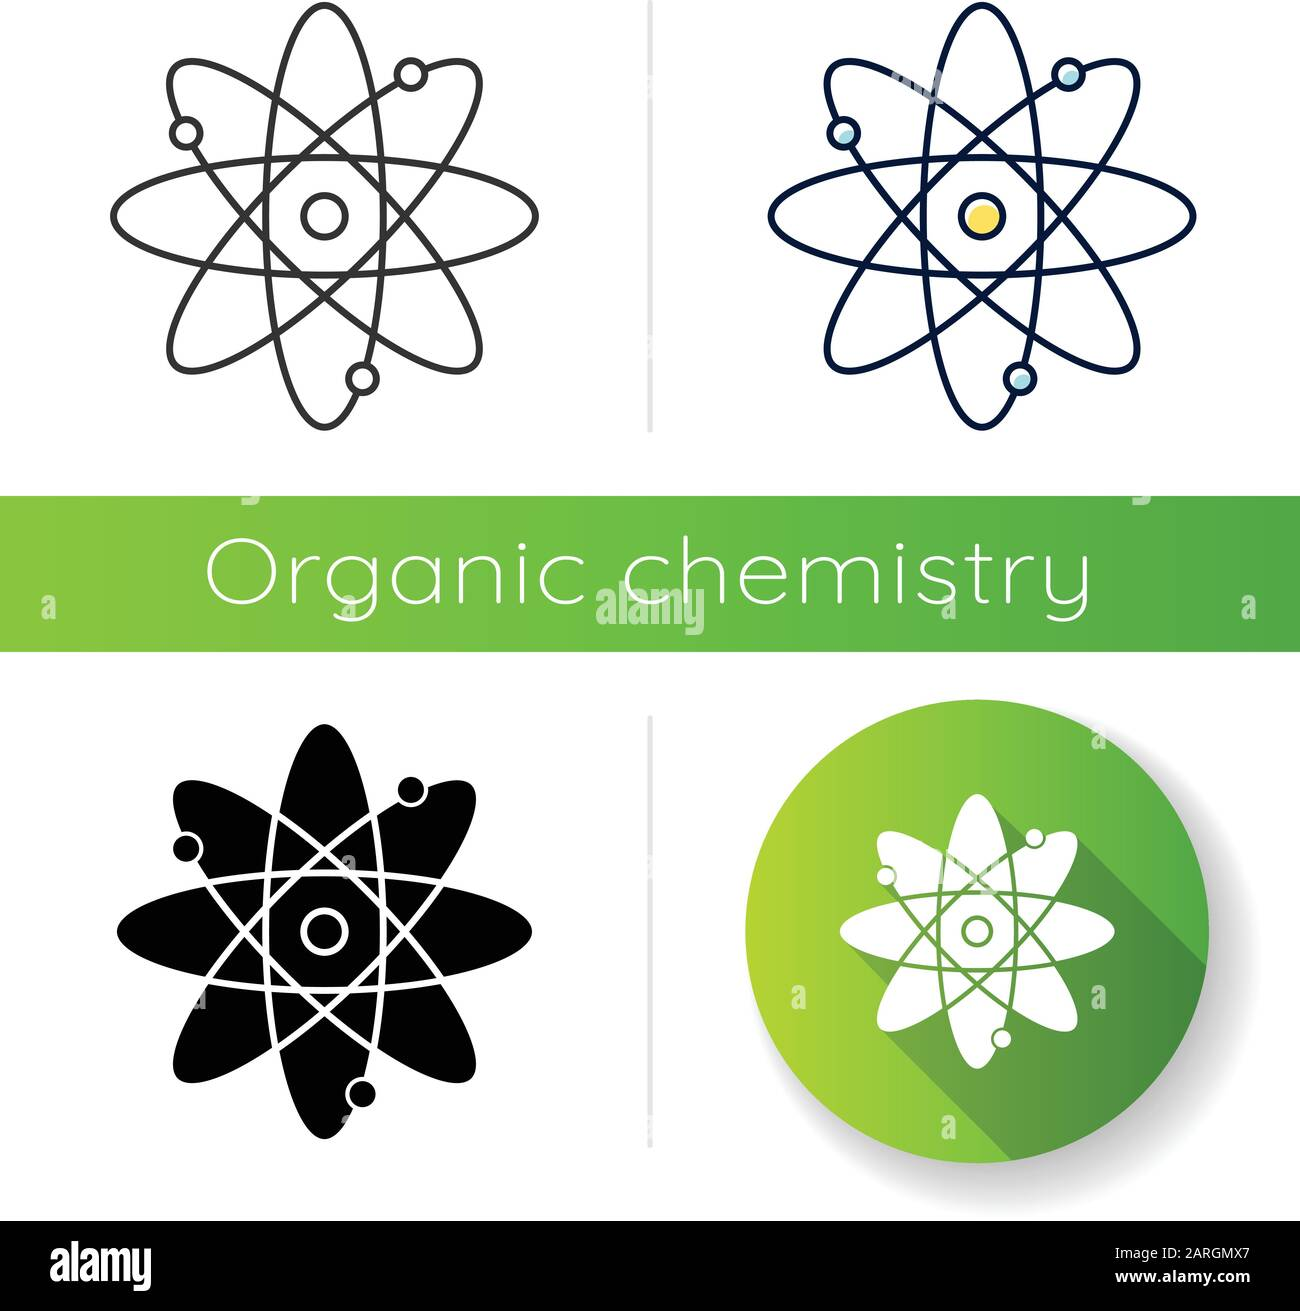 molecule atom icon nuclear energy atom core with electrons orbits science symbol model of particle organic chemistry flat design linear black stock vector image art alamy https www alamy com molecule atom icon nuclear energy atom core with electrons orbits science symbol model of particle organic chemistry flat design linear black image341501727 html